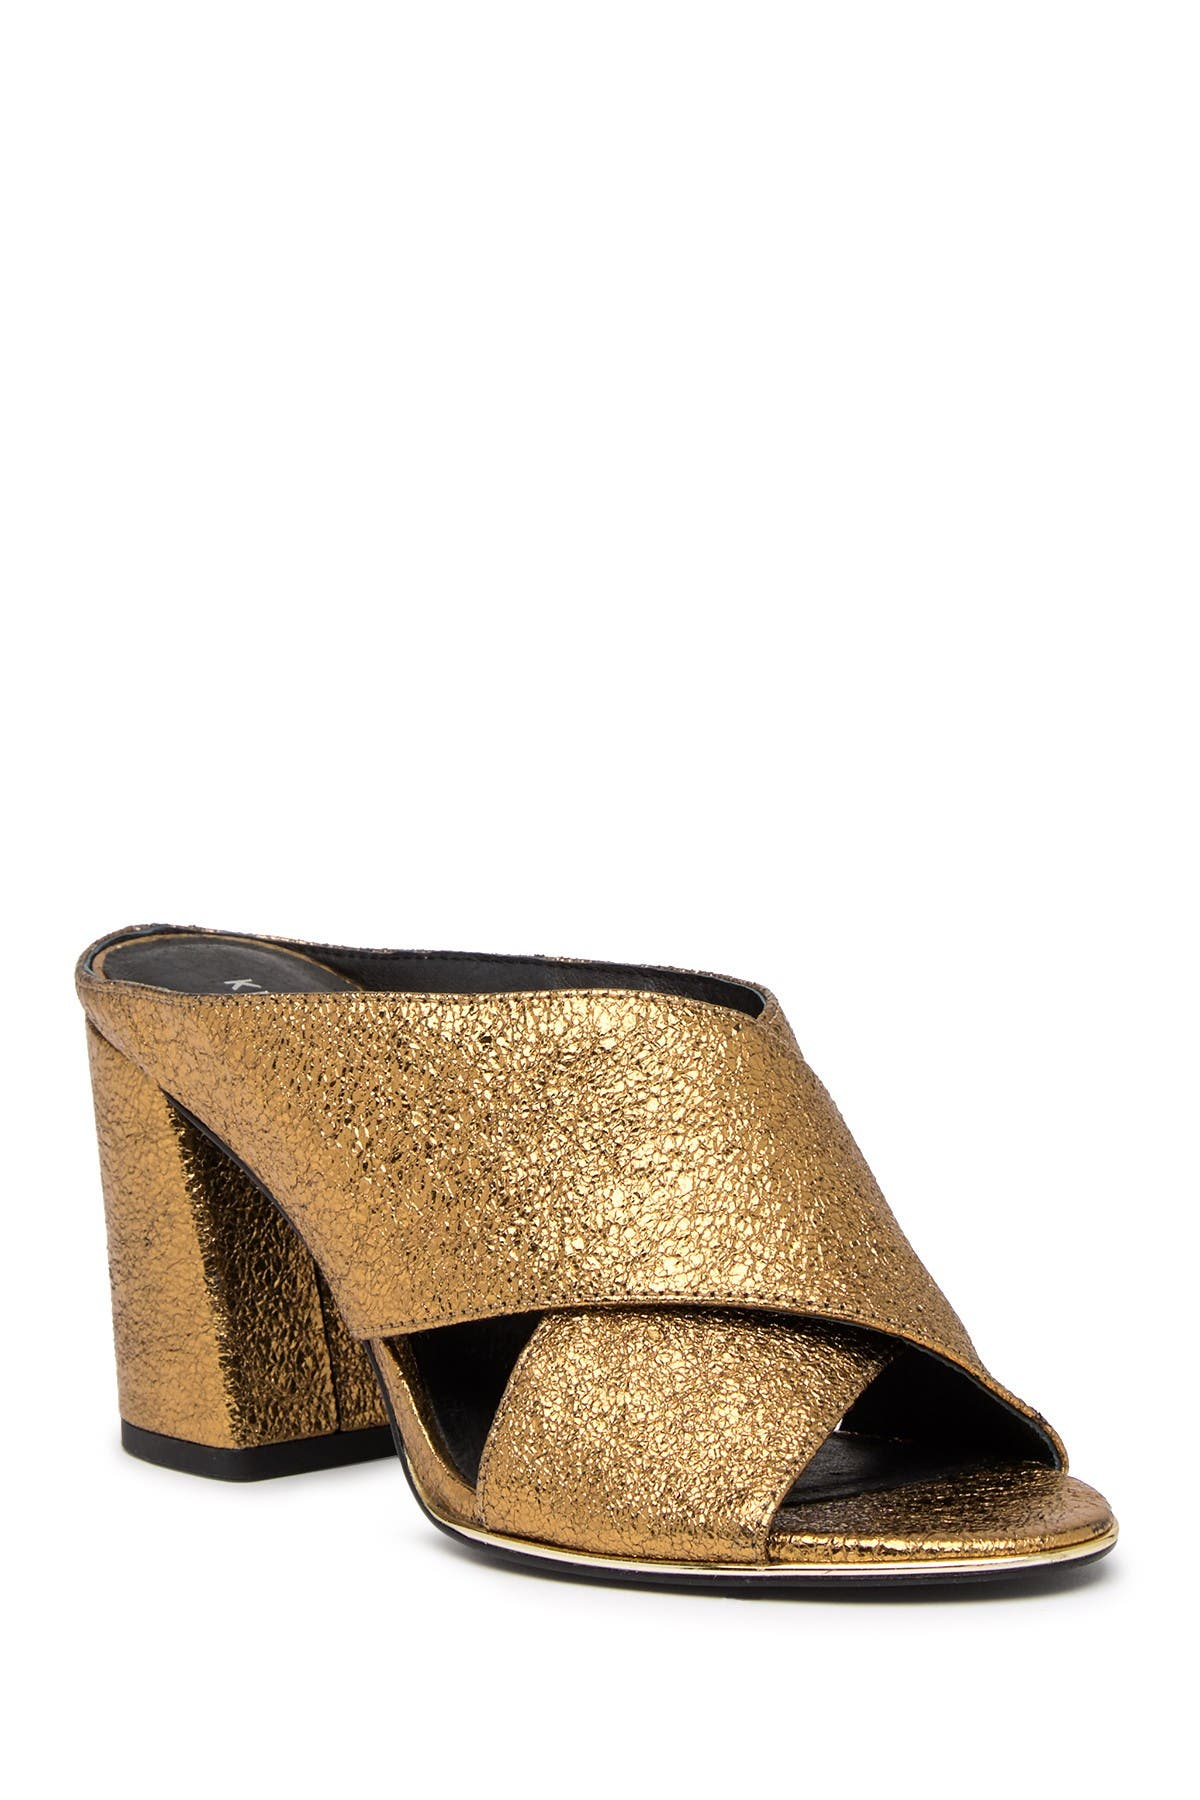 Image of Kenneth Cole New York 7 Lyra Mule